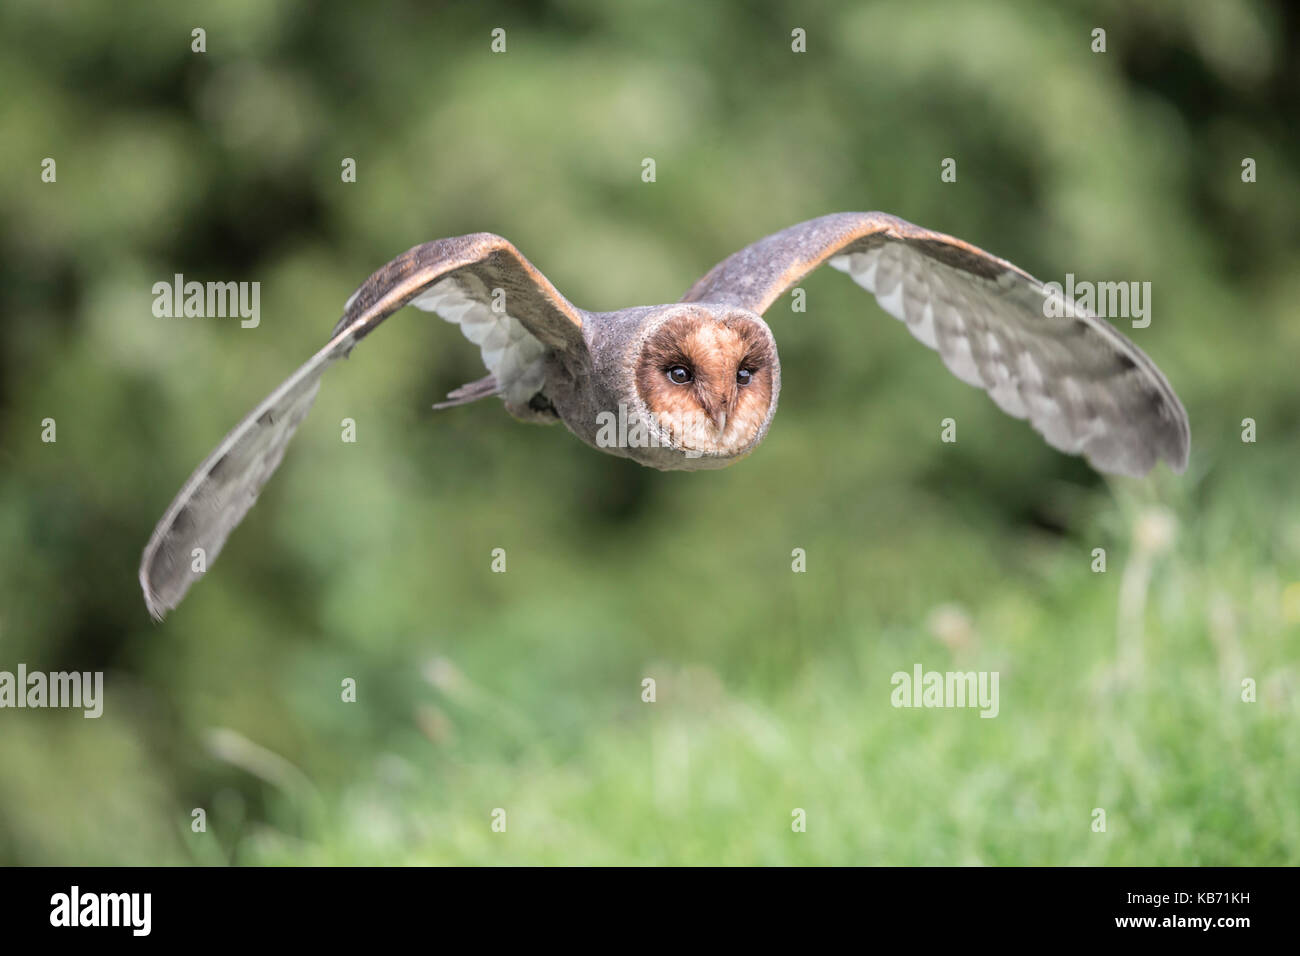 Owl Flying Front Stock Photos & Owl Flying Front Stock Images - Alamy